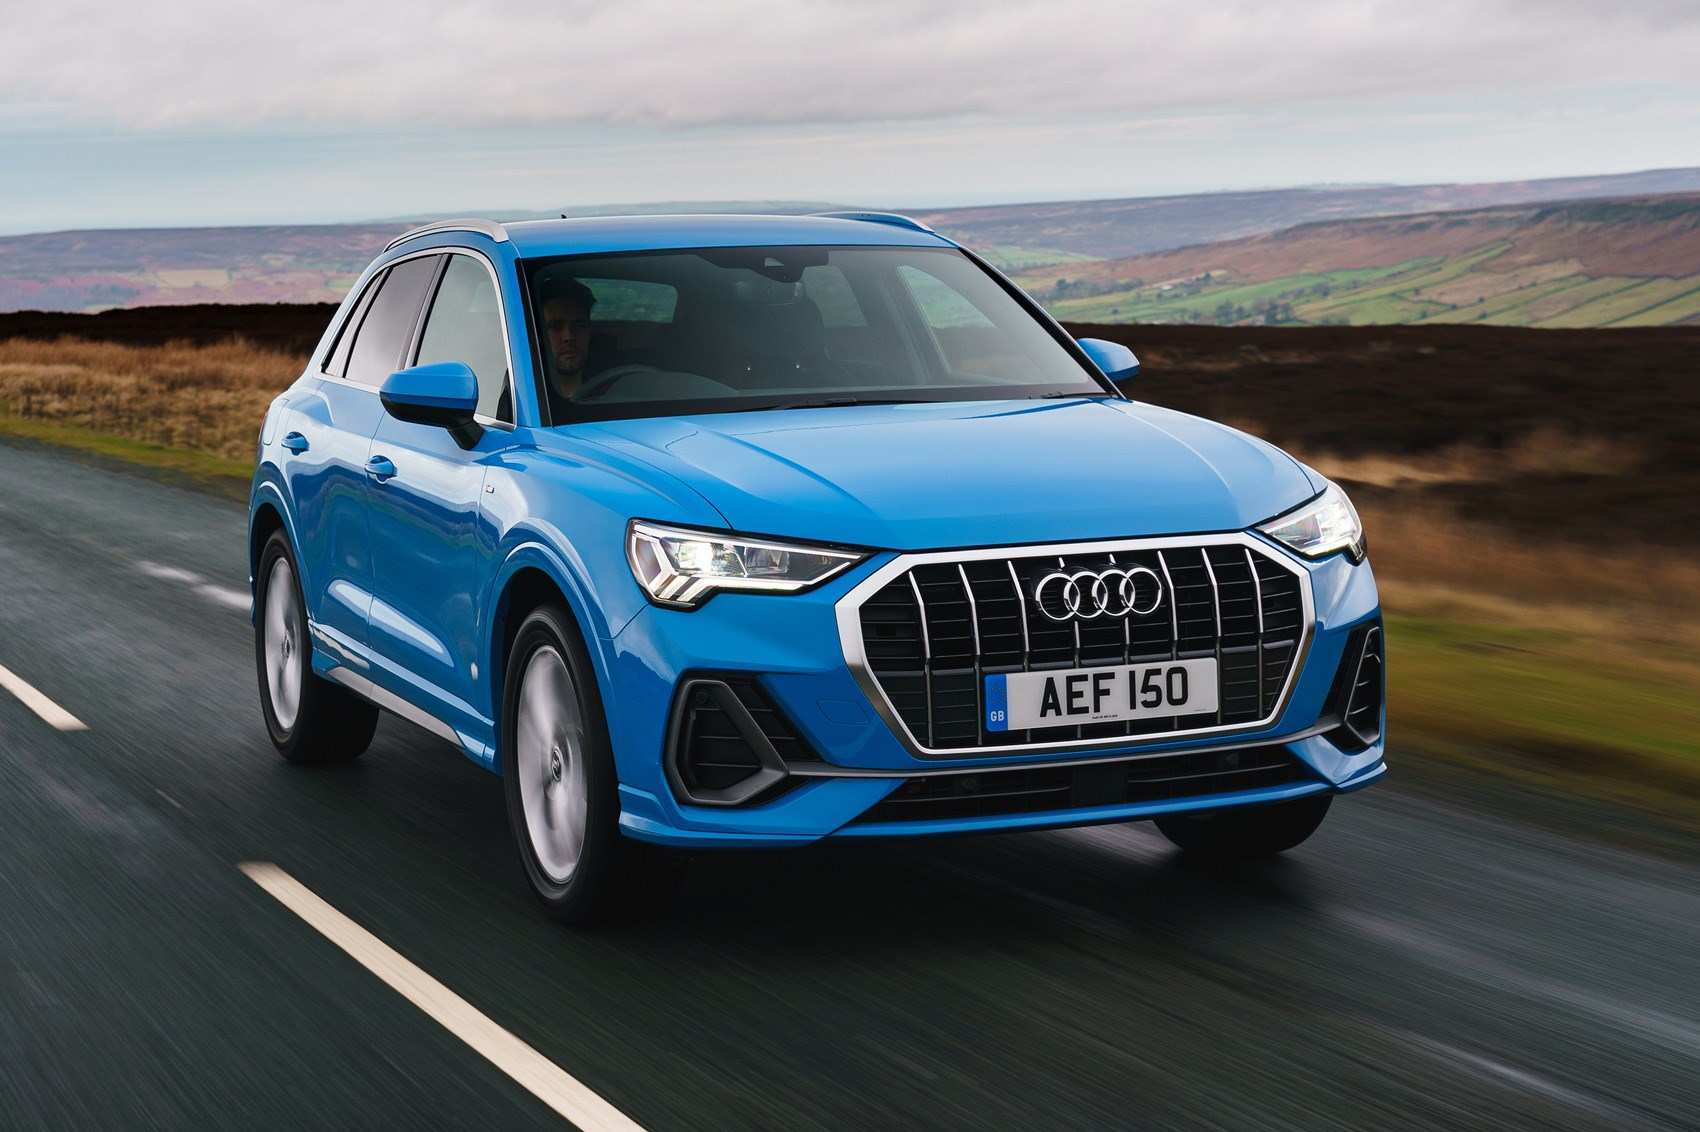 65 All New New Audi 2019 Uk Exterior Performance for New Audi 2019 Uk Exterior